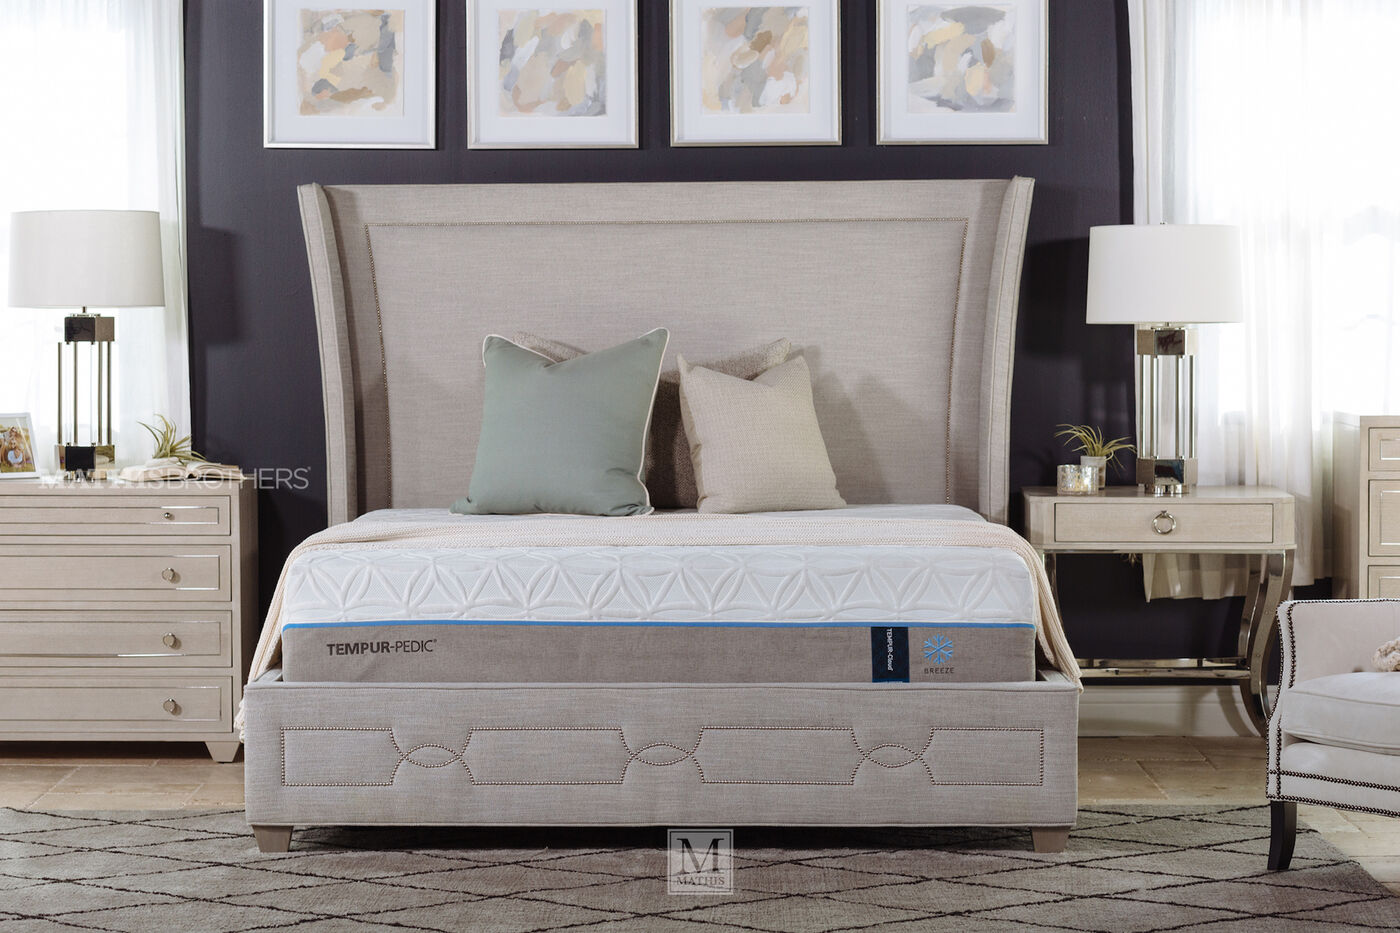 to foot kitchen headboards adjustable and pict bathroom appealing for headboard head queen bedroom board king trend bed tempurpedic f attached